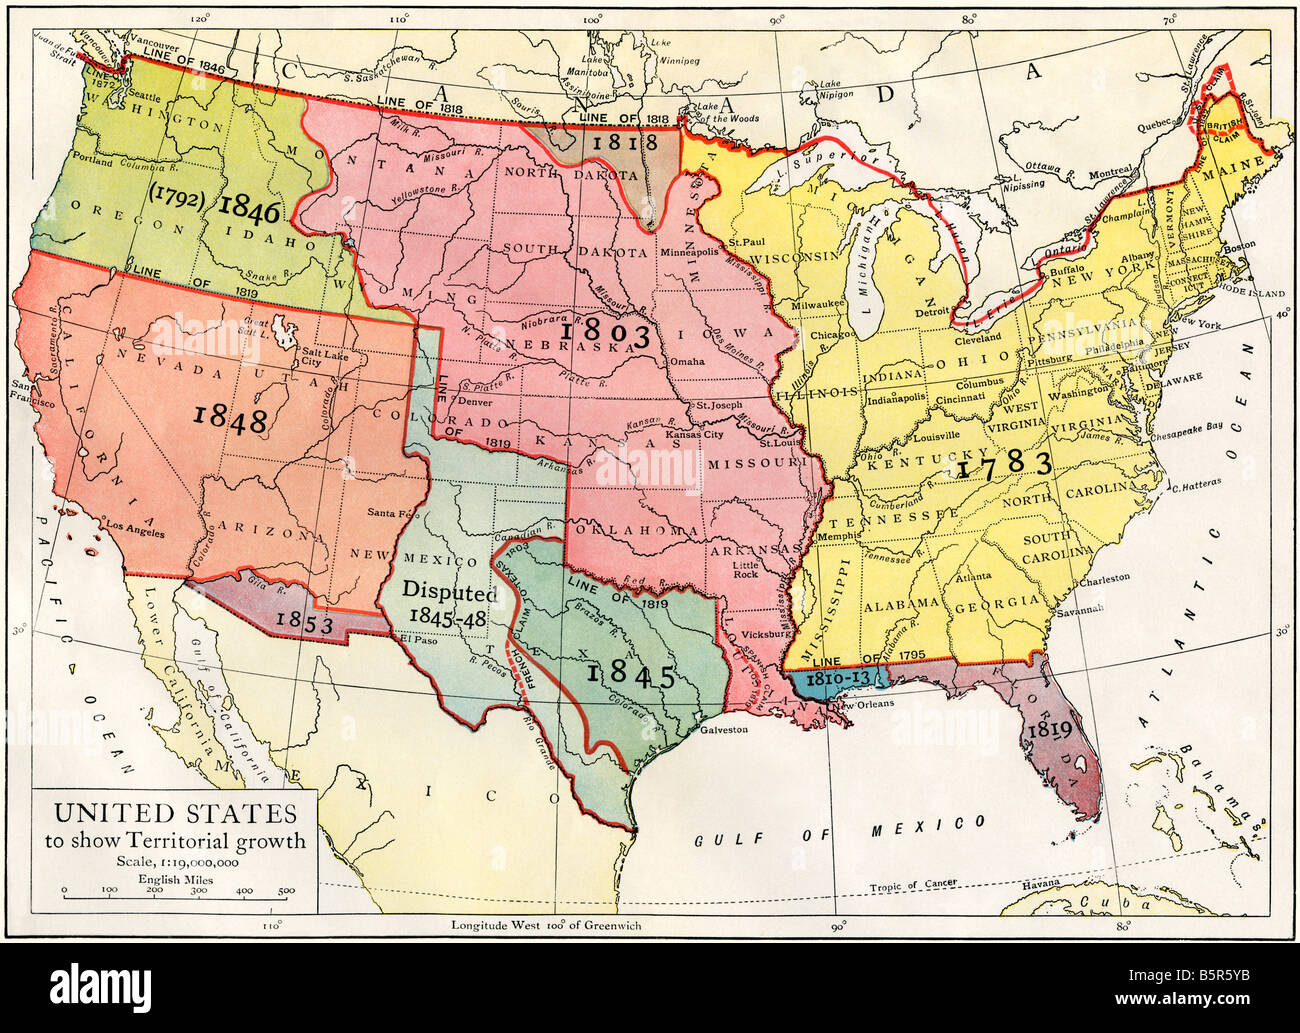 US map showing territorial growth to 1853 Stock Photo Royalty